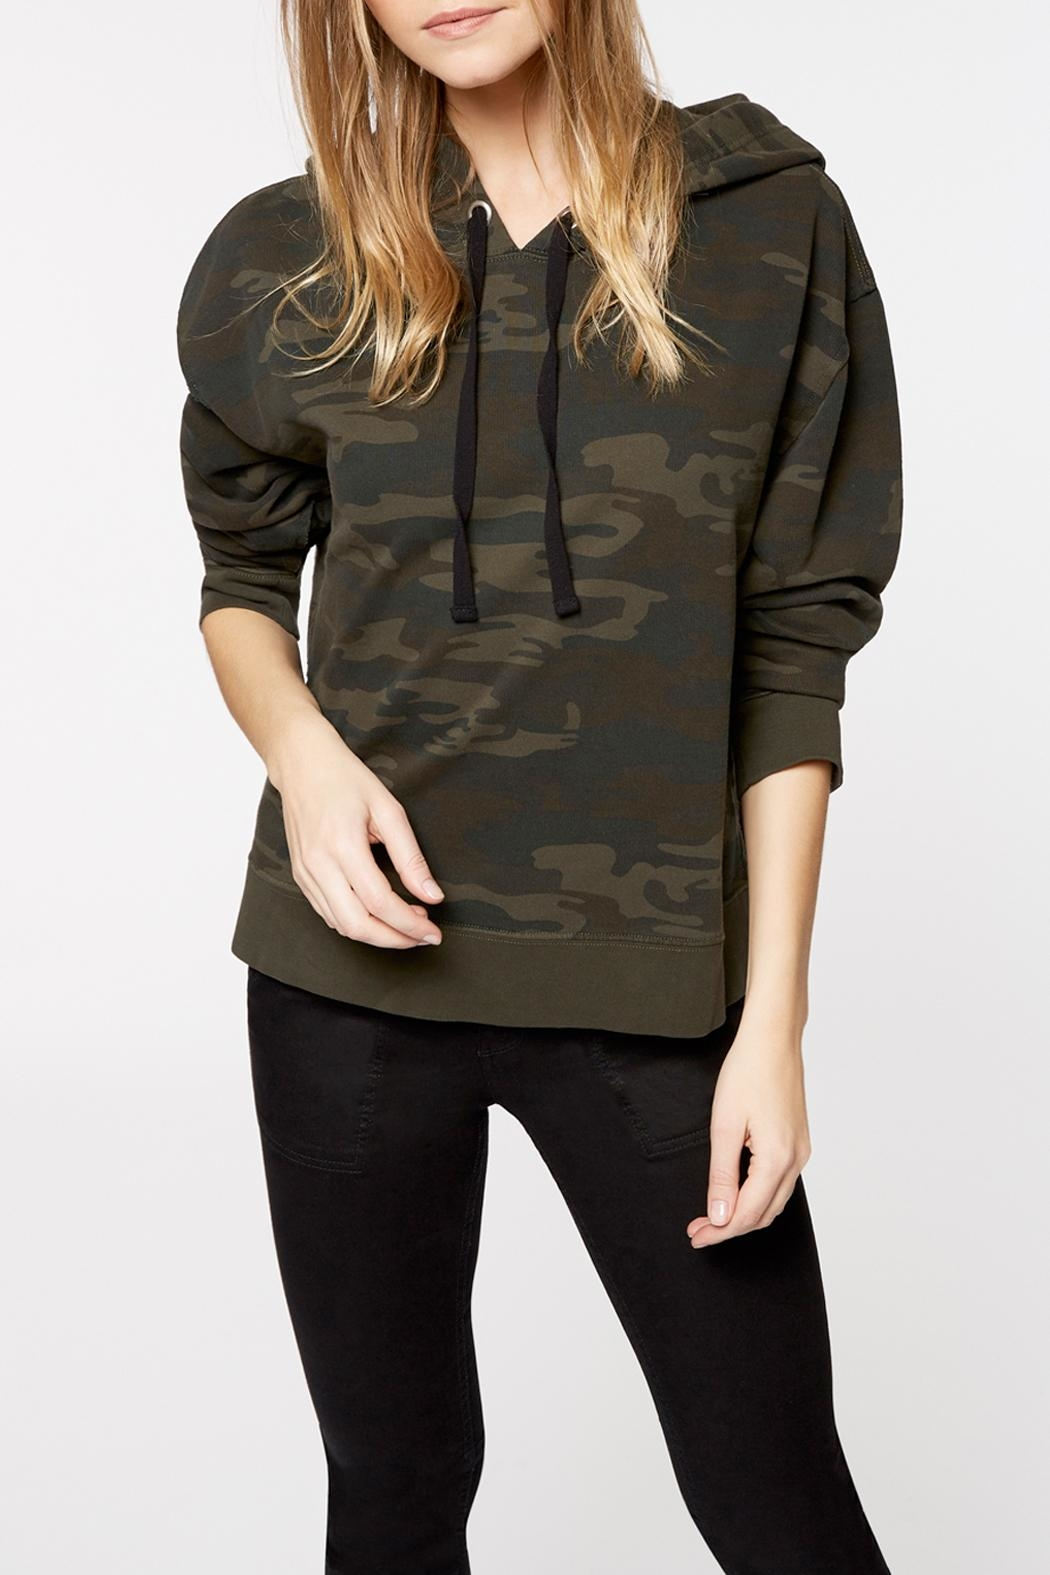 Sanctuary Venice Hoodie Sweatshirt - Front Cropped Image